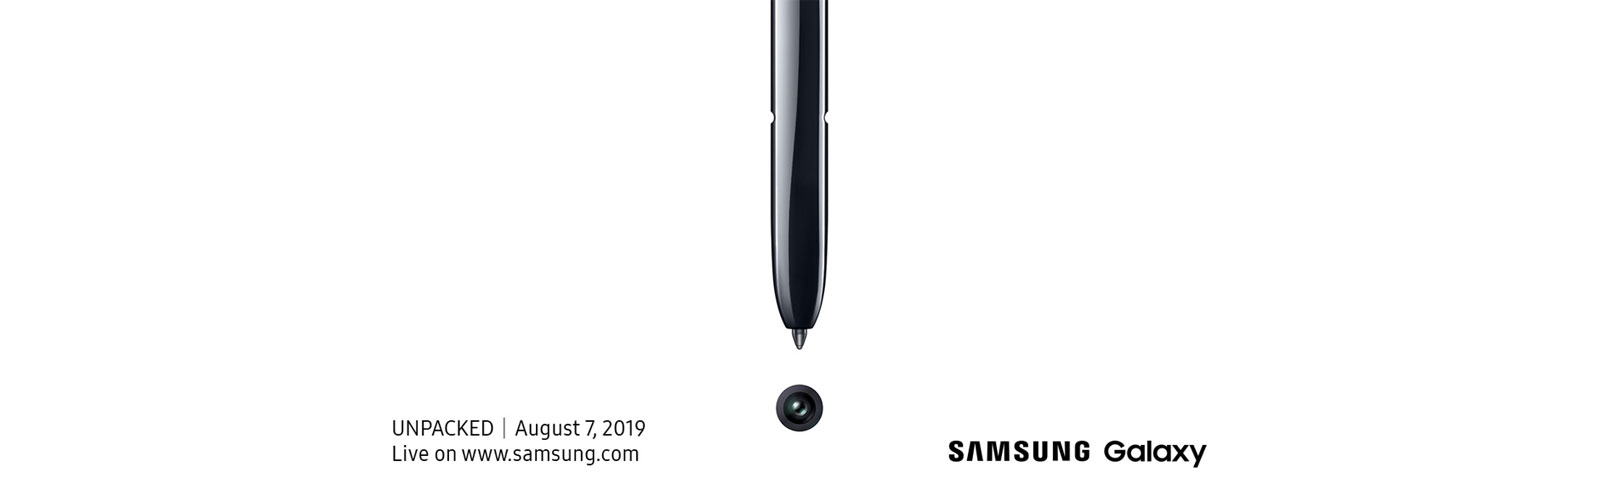 It's official: Samsung will present the Galaxy Note 10 on August 7